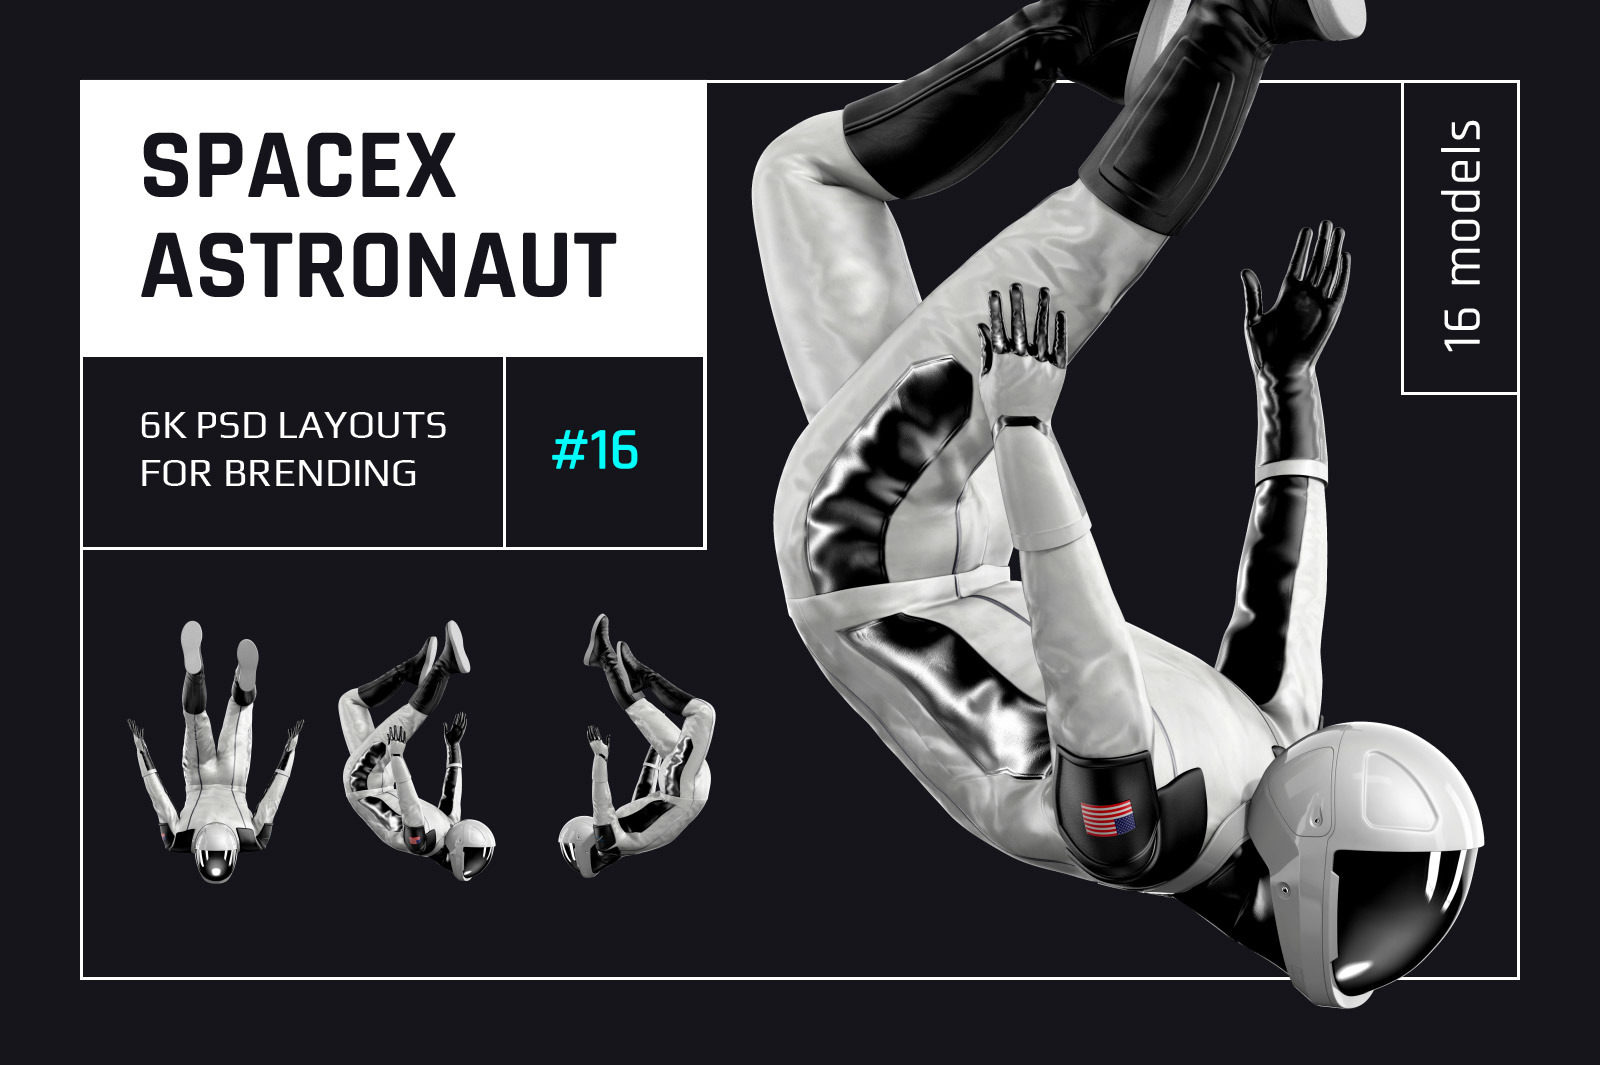 PSD Mockup 3D model SpaceX Astronaut #16